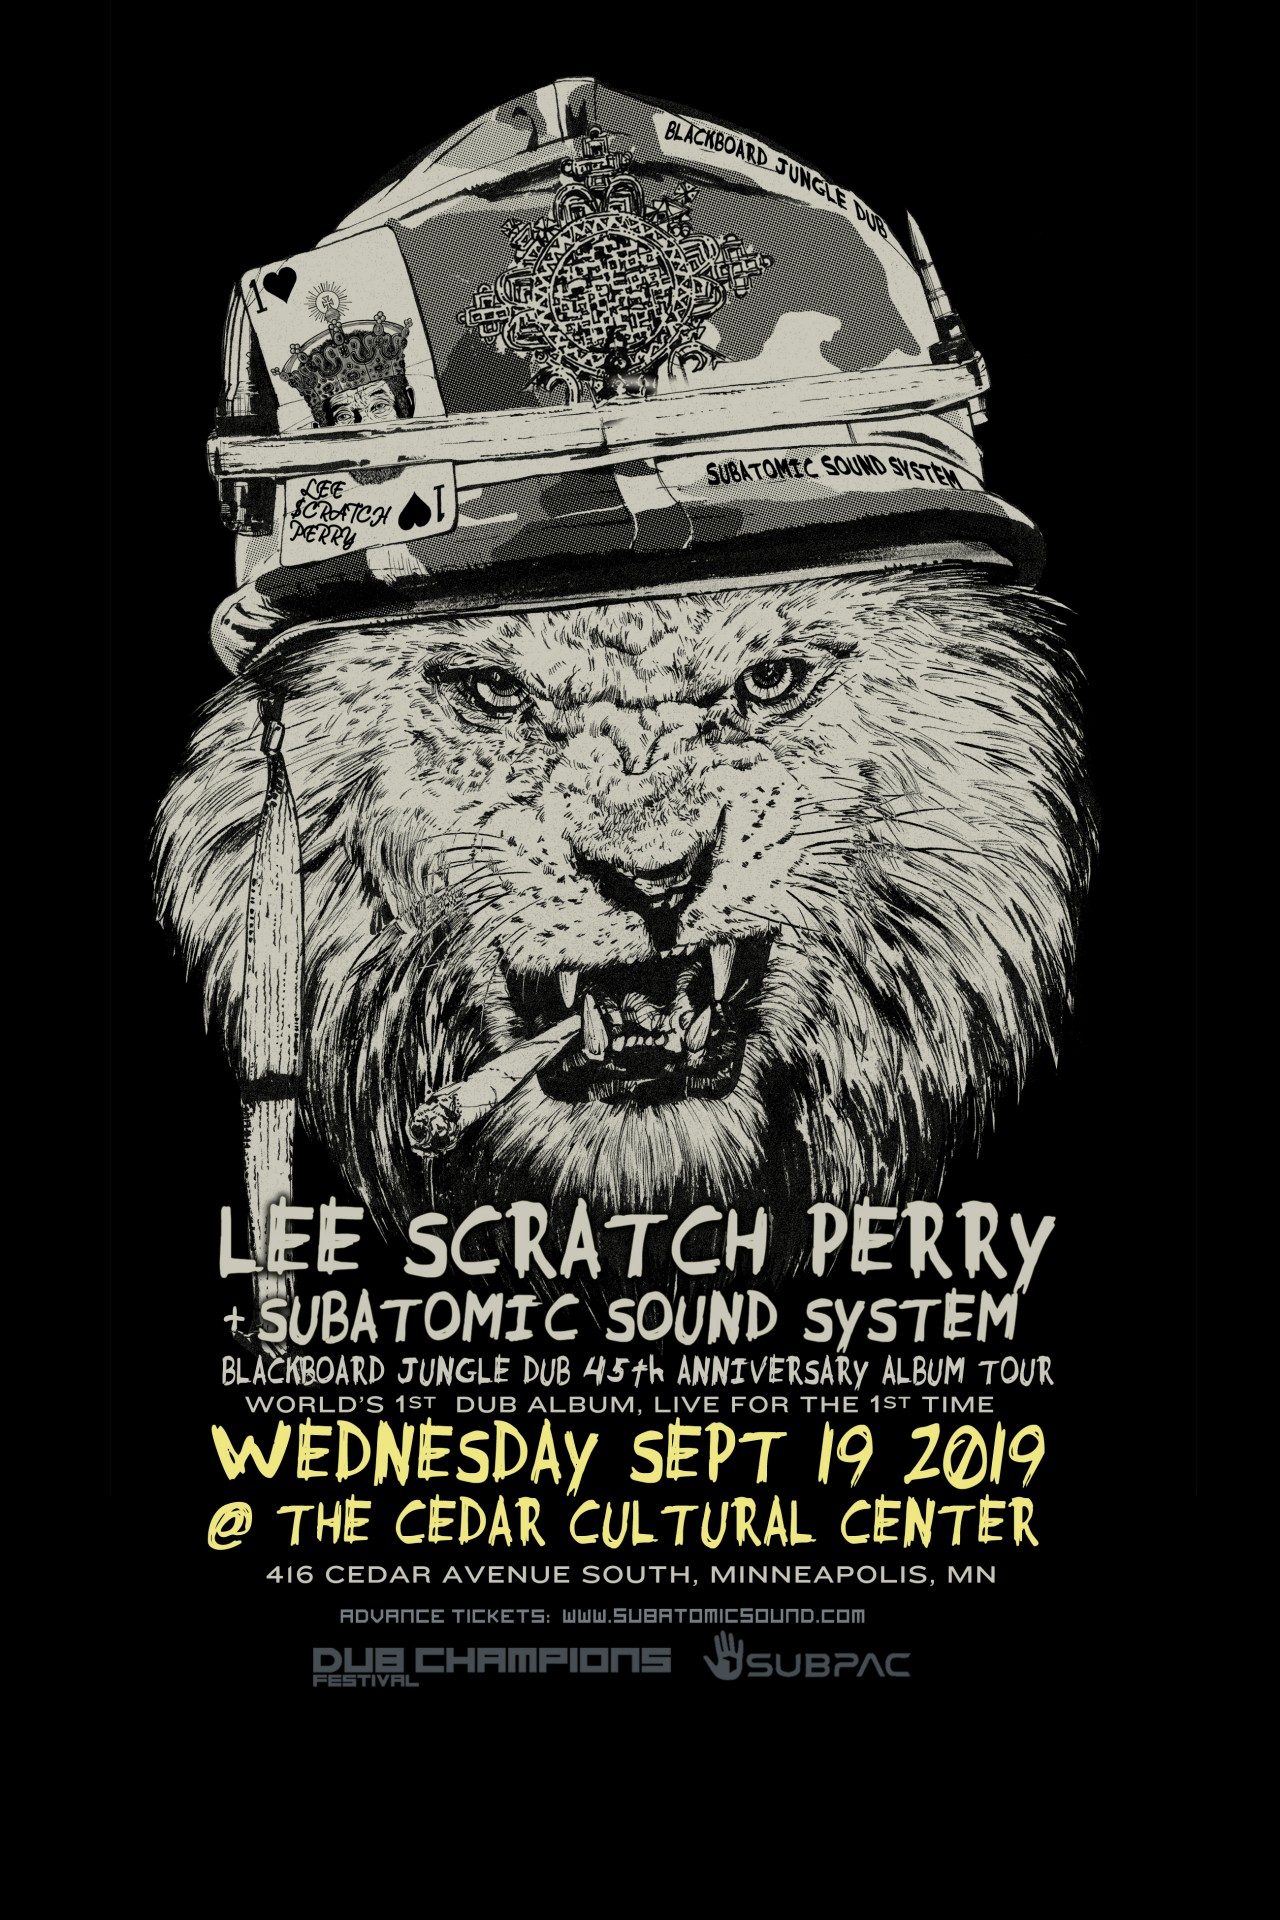 Subatomic Sound System — all things dubwise and bass heavy